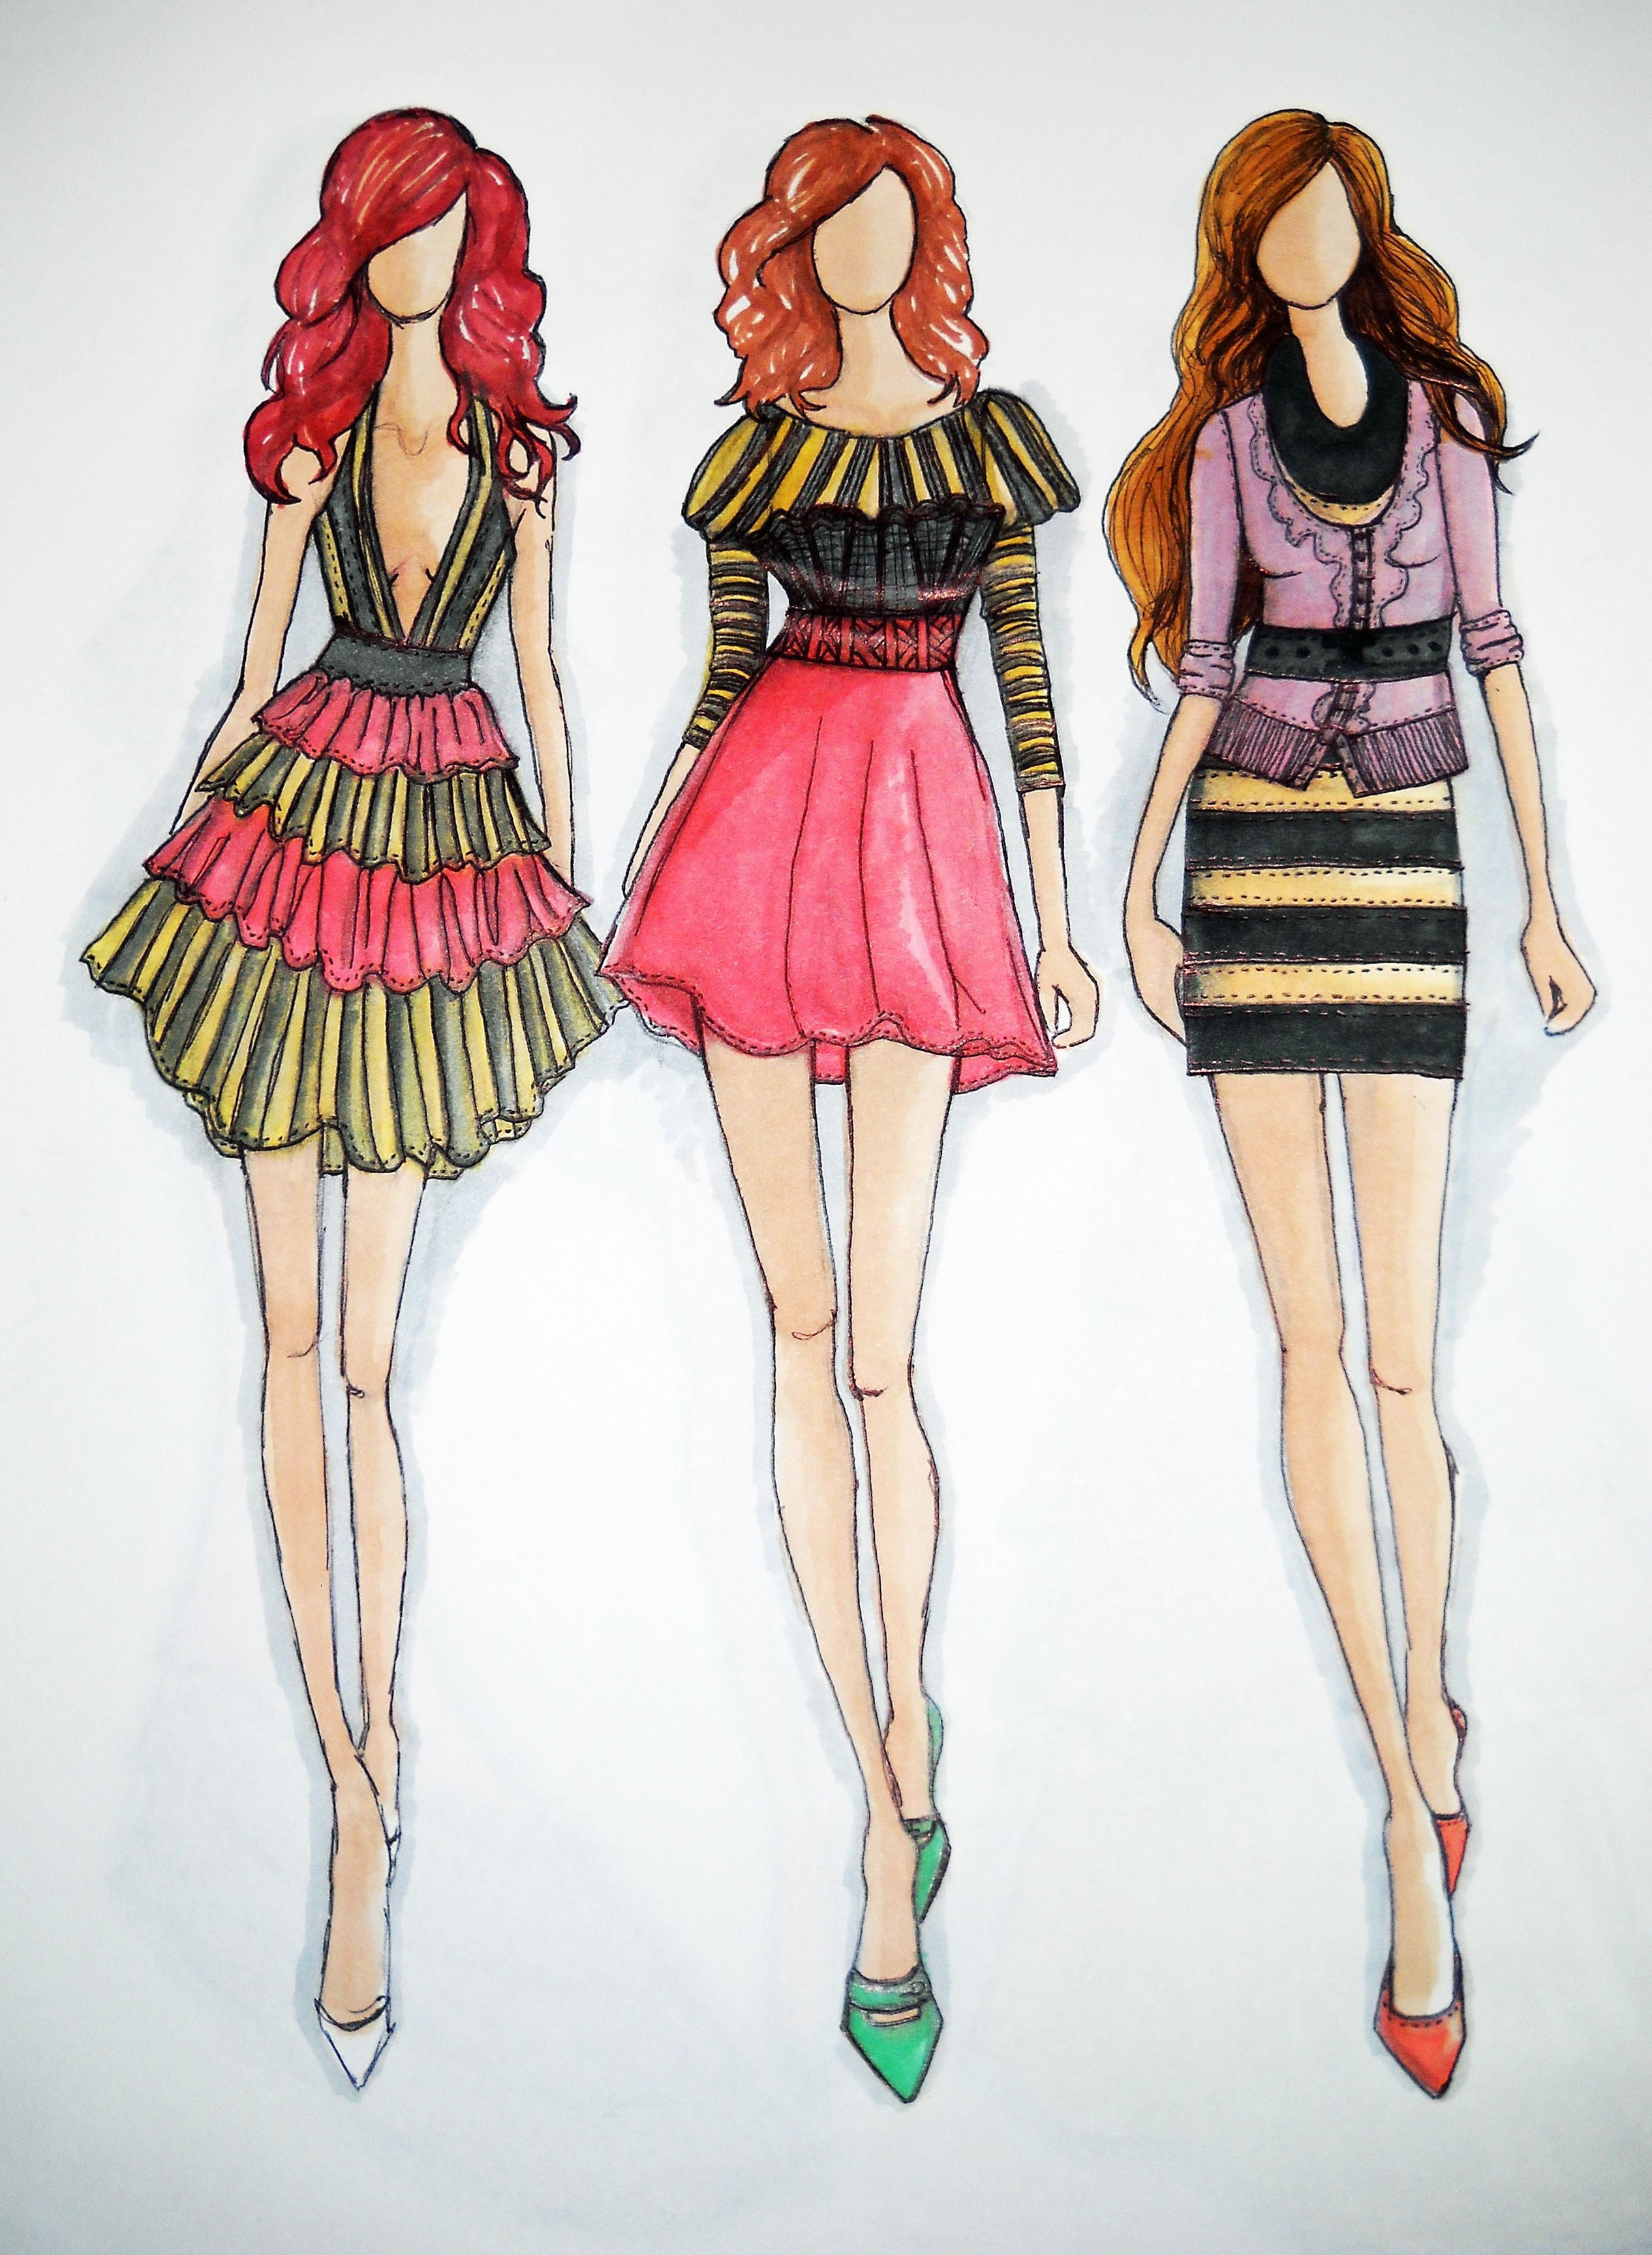 Ill Still Be In The Fashion Industry And Making Clothing As Well As For My Clothing Line Fashion Design Fashion Design Sketches Glamour Fashion